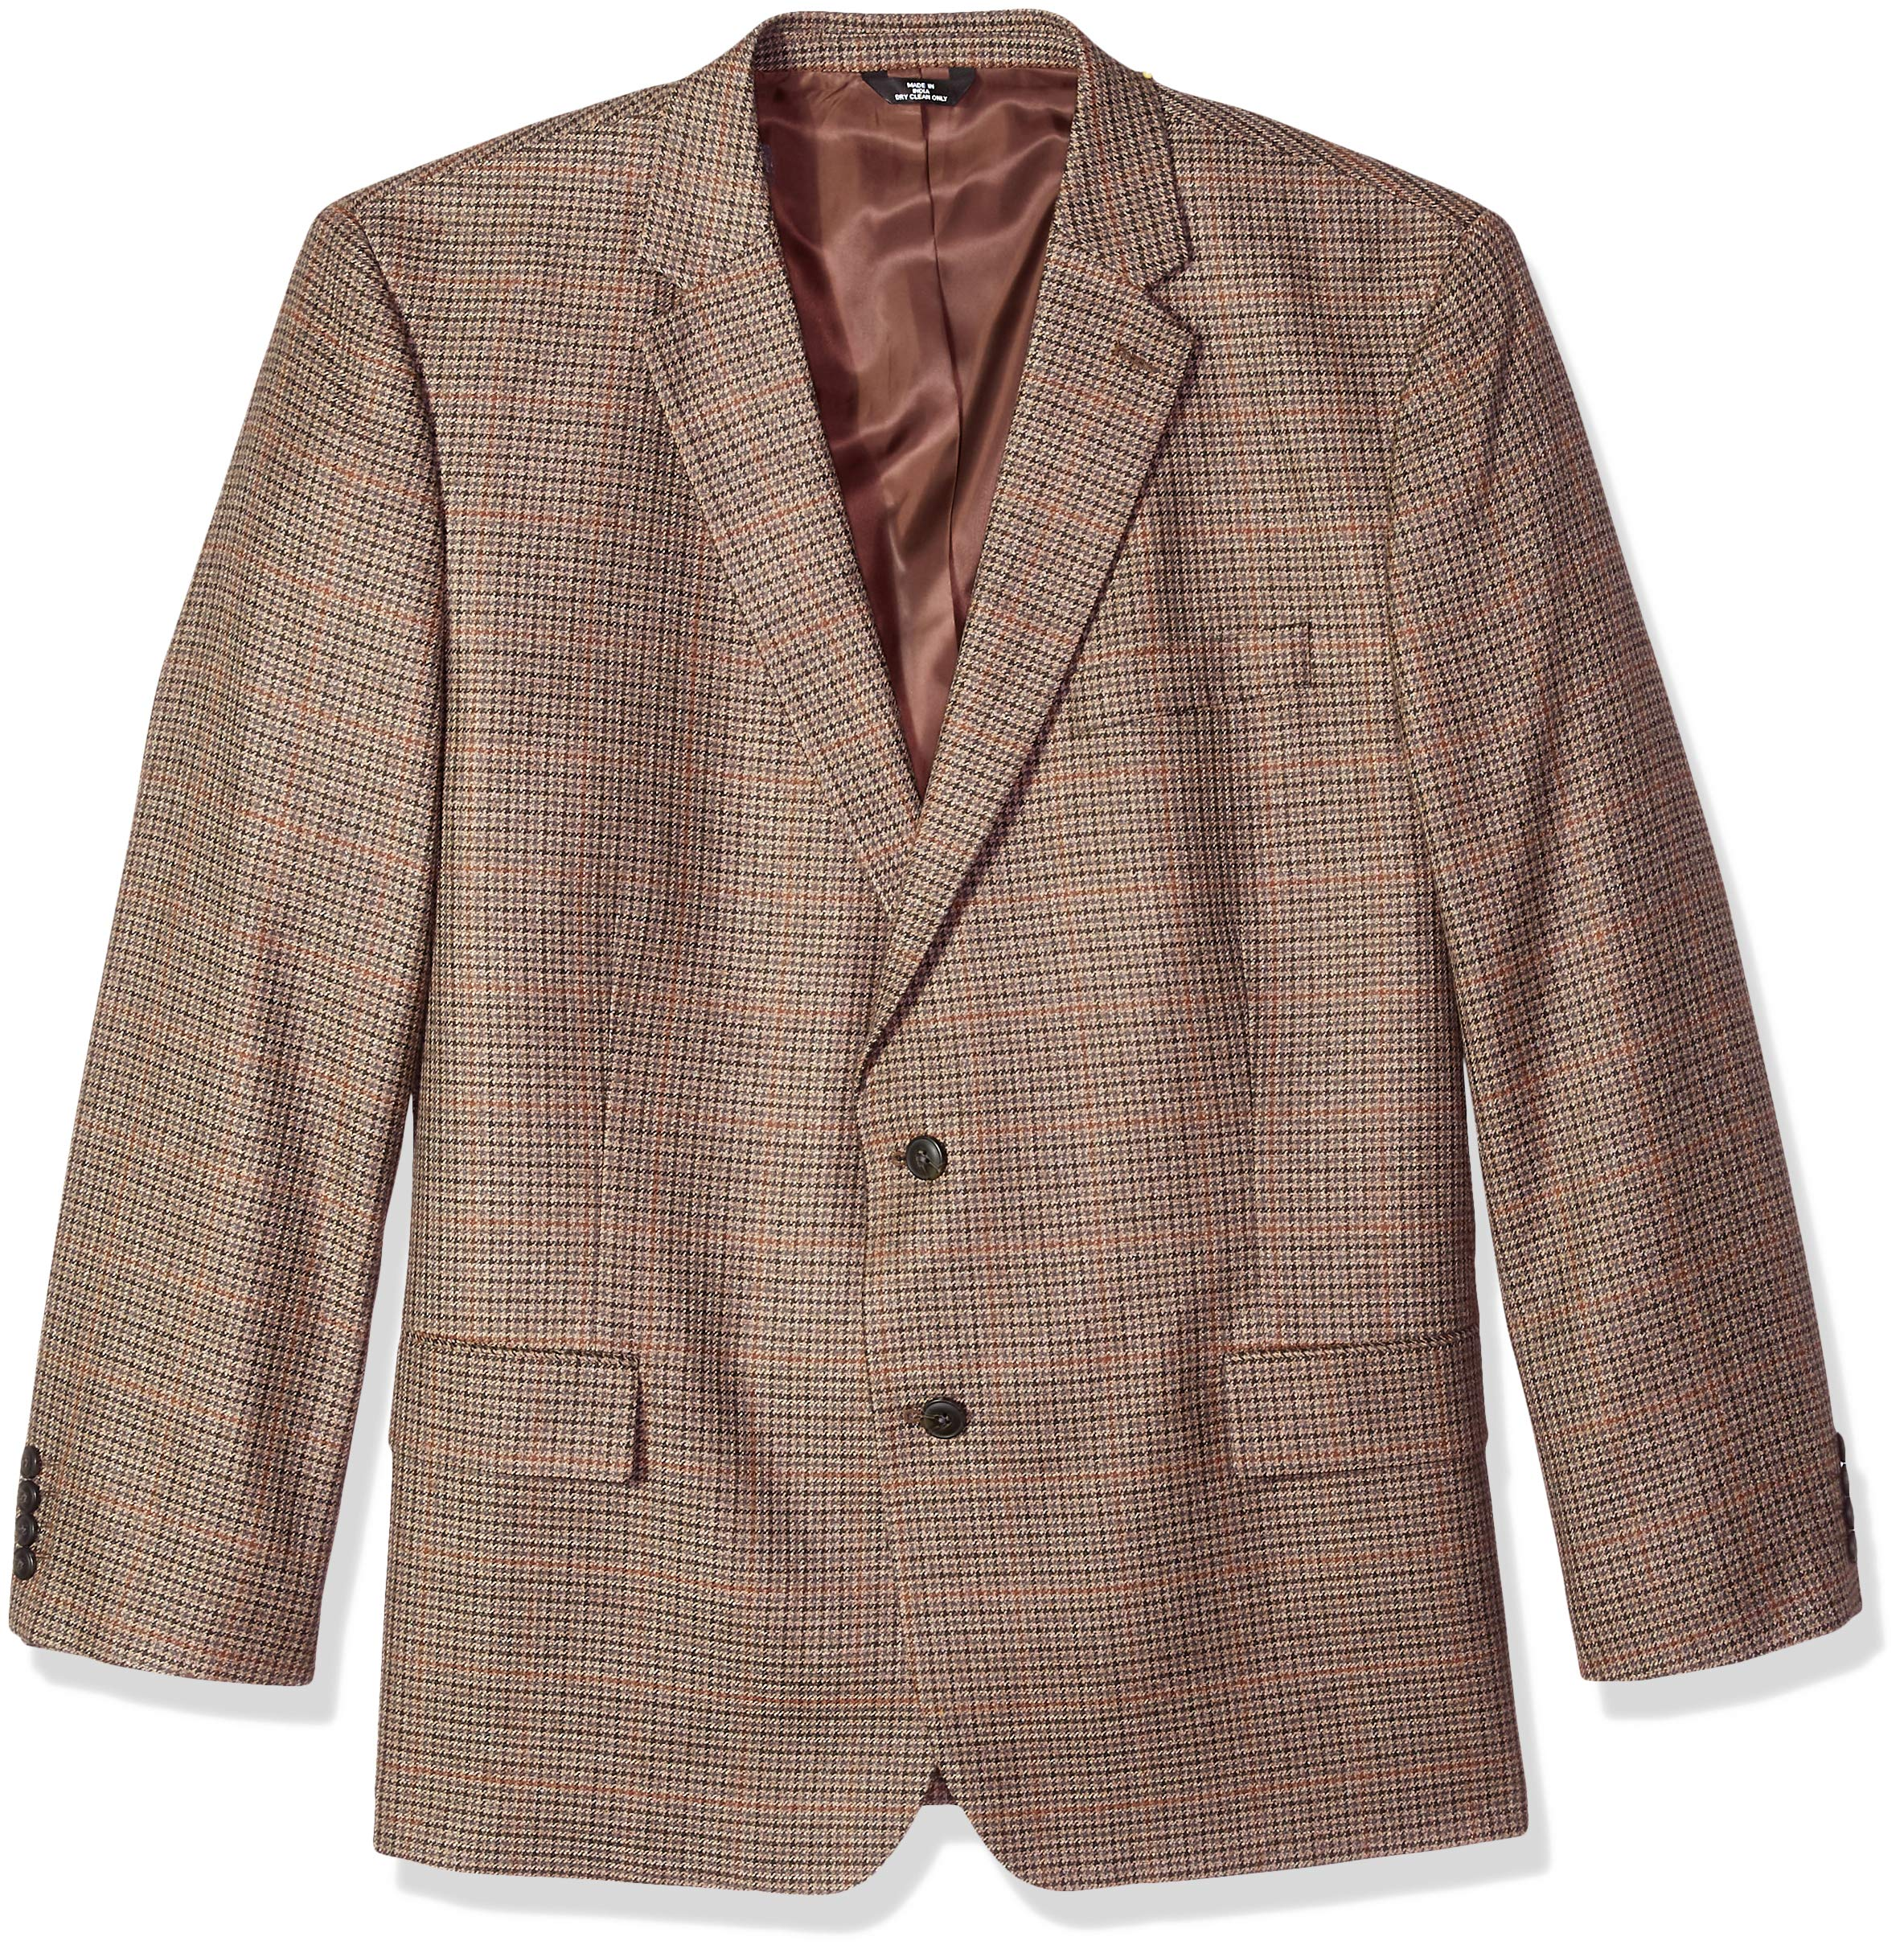 Haggar Men's Big and Tall B&T Houndstooth Plaid Lambswool Classic Fit Sport Coat, Oatmeal 56R